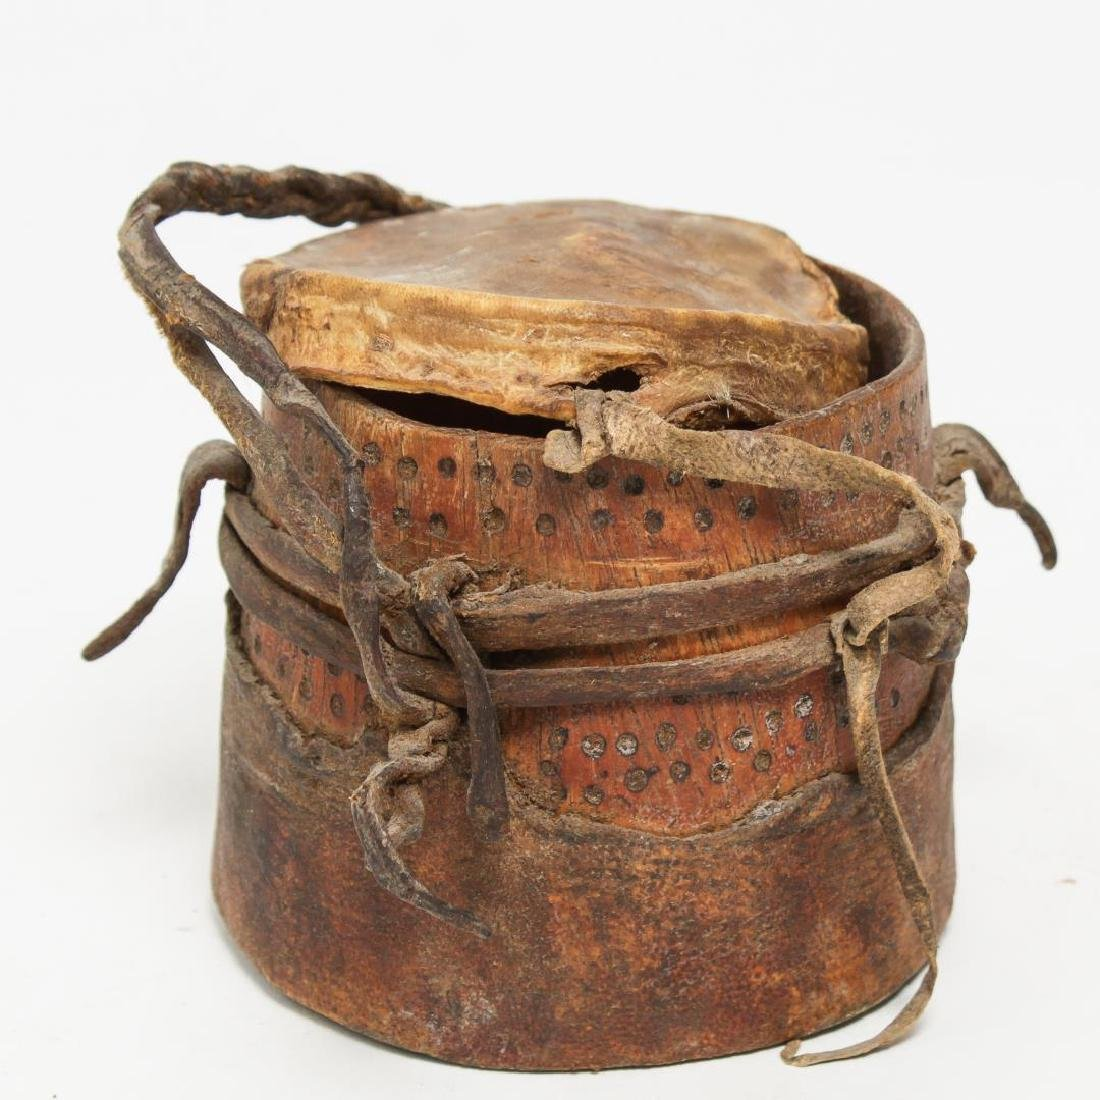 Tribal Ethnographic Gourd or Wood Containers, 3 - 5